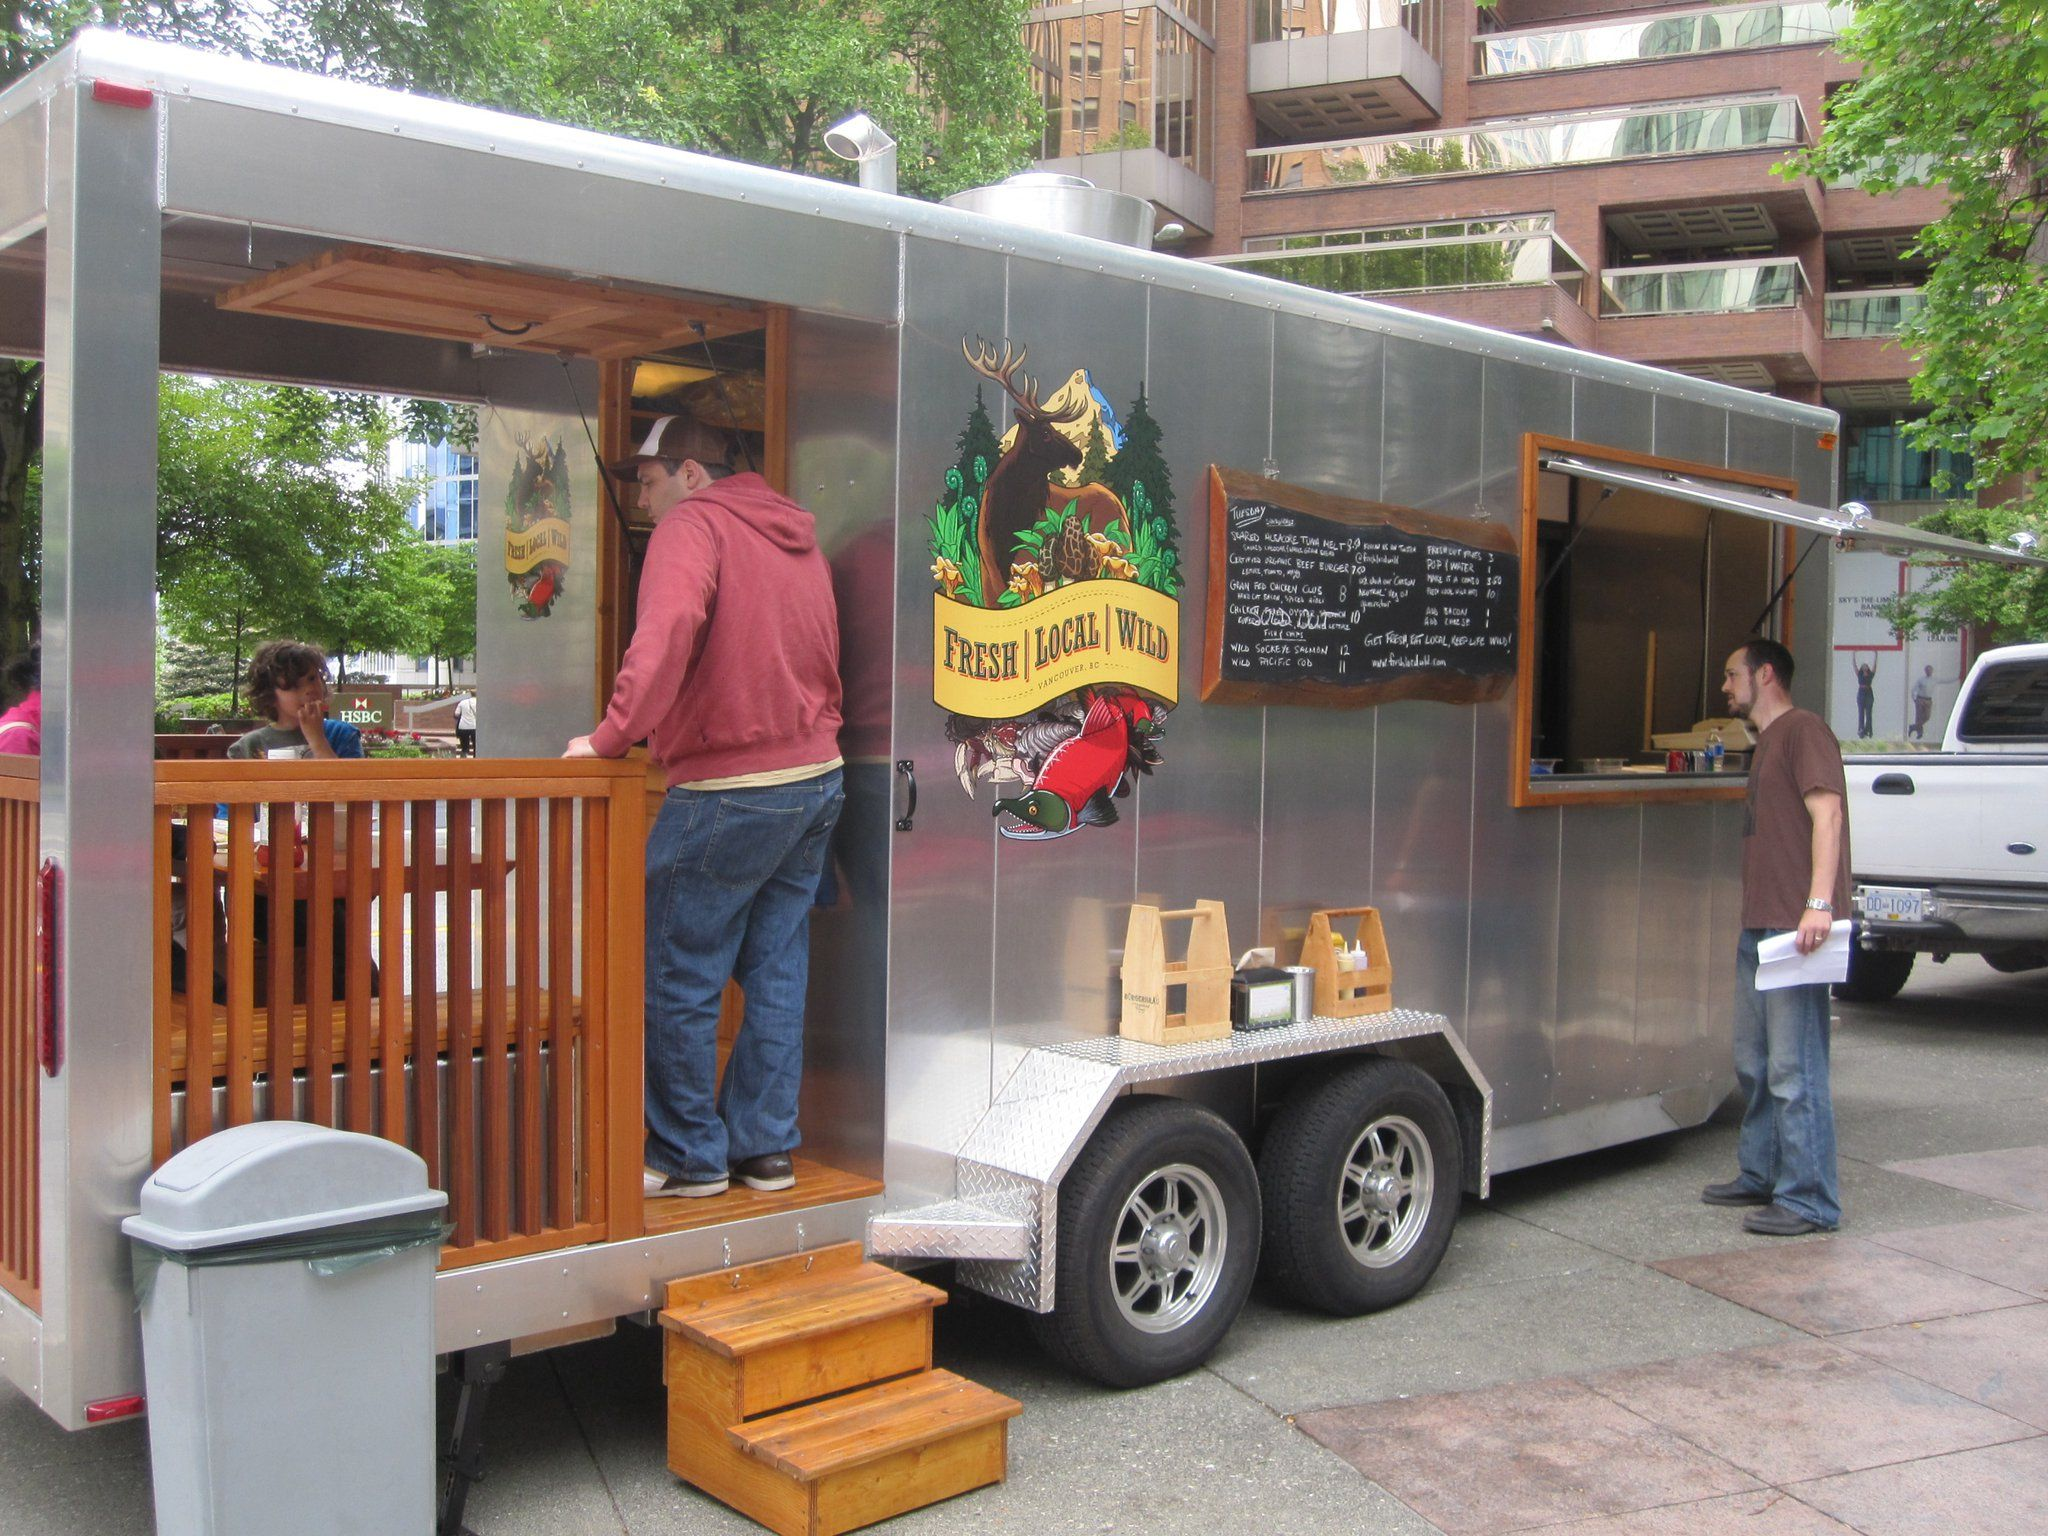 Check Out The Deck On This Food Trailer Love It